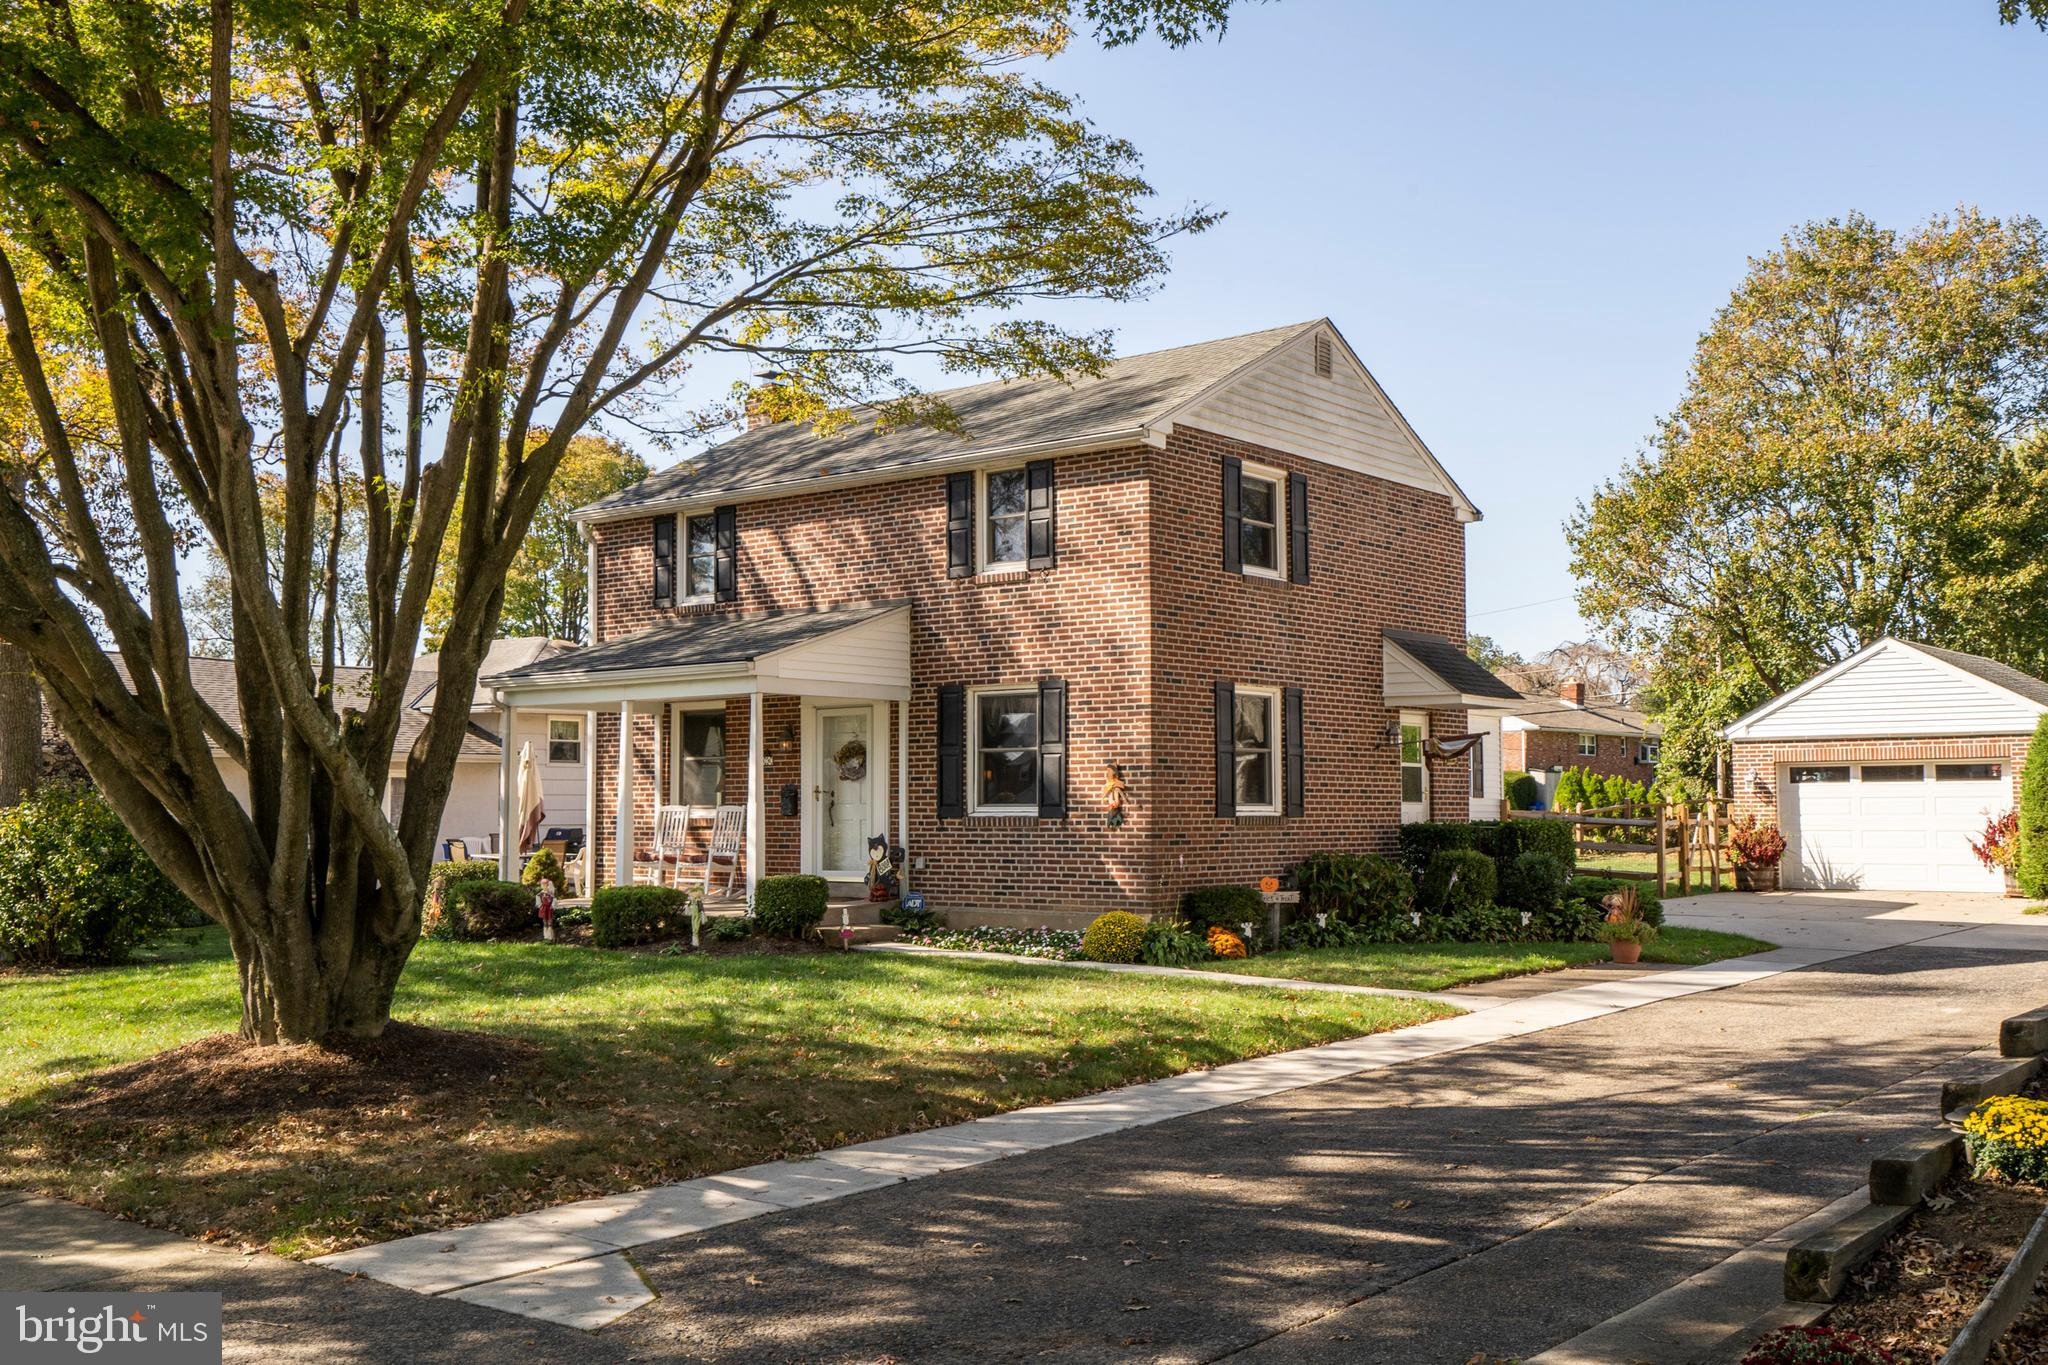 1266 DILL ROAD, HAVERTOWN, PA 19083